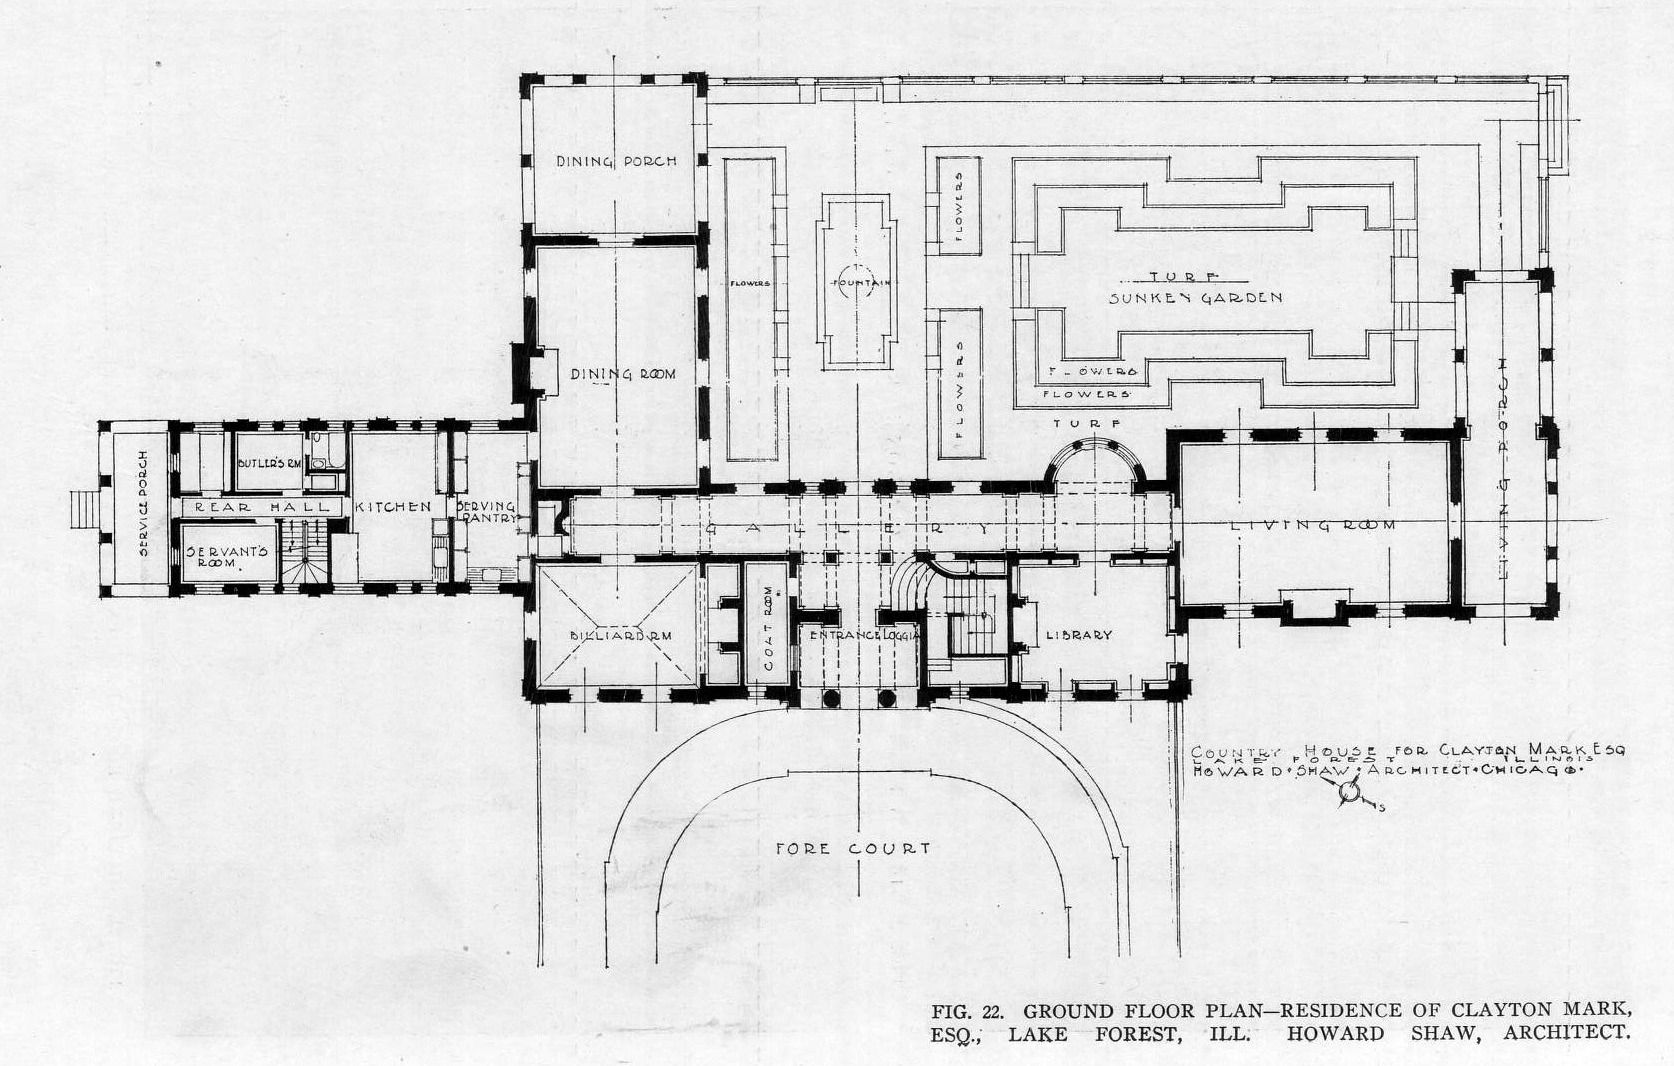 Ground Floor plan of the Clayton Mark, Esq., Residence, Lake Forest ...